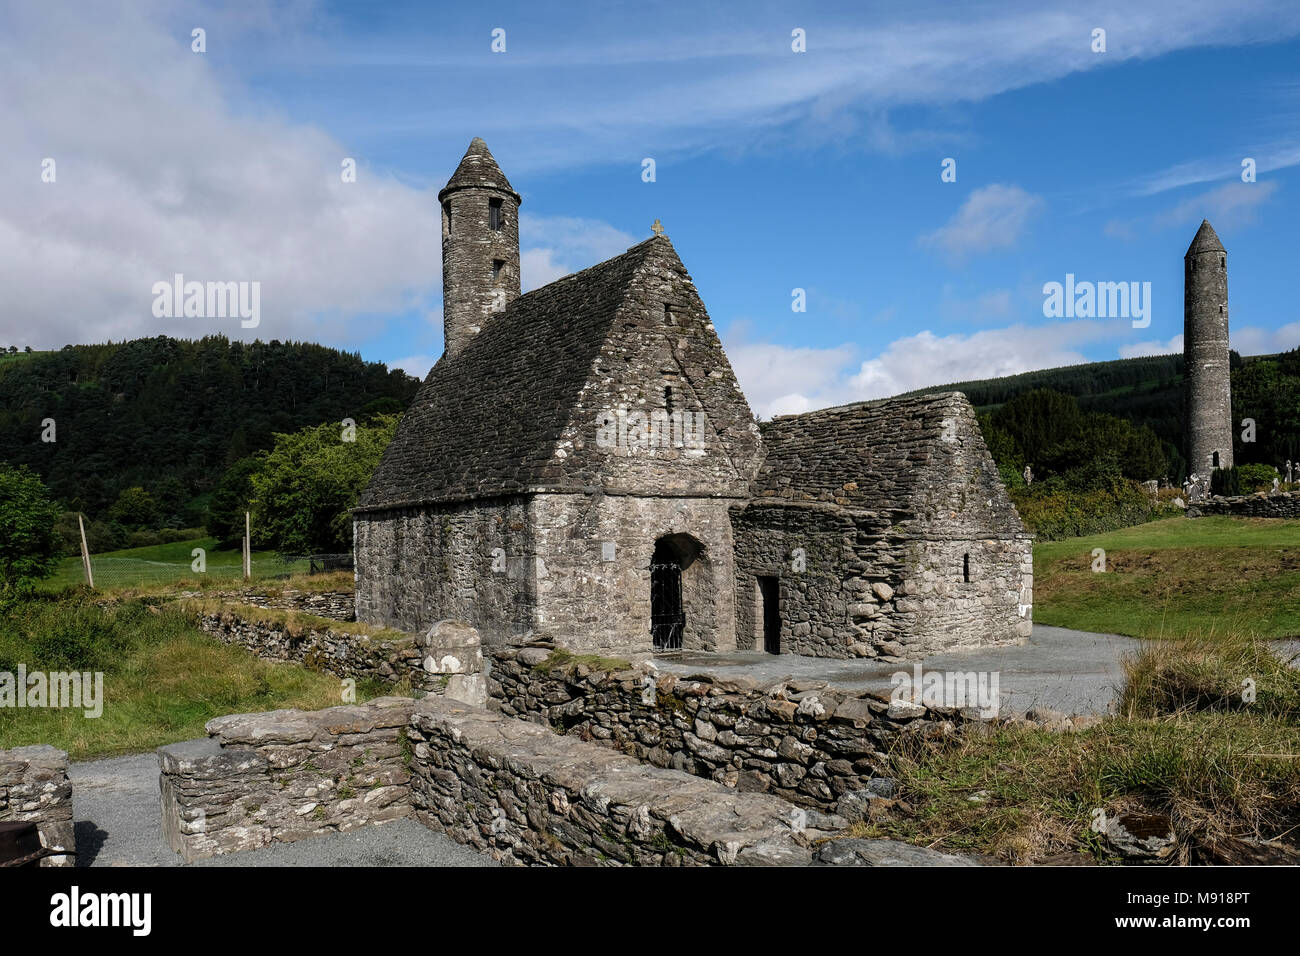 Ireland. St. Kevin's Church better known as St. Kevin's Kitchen is a nave-and-chancel church of the 12th century. - Stock Image